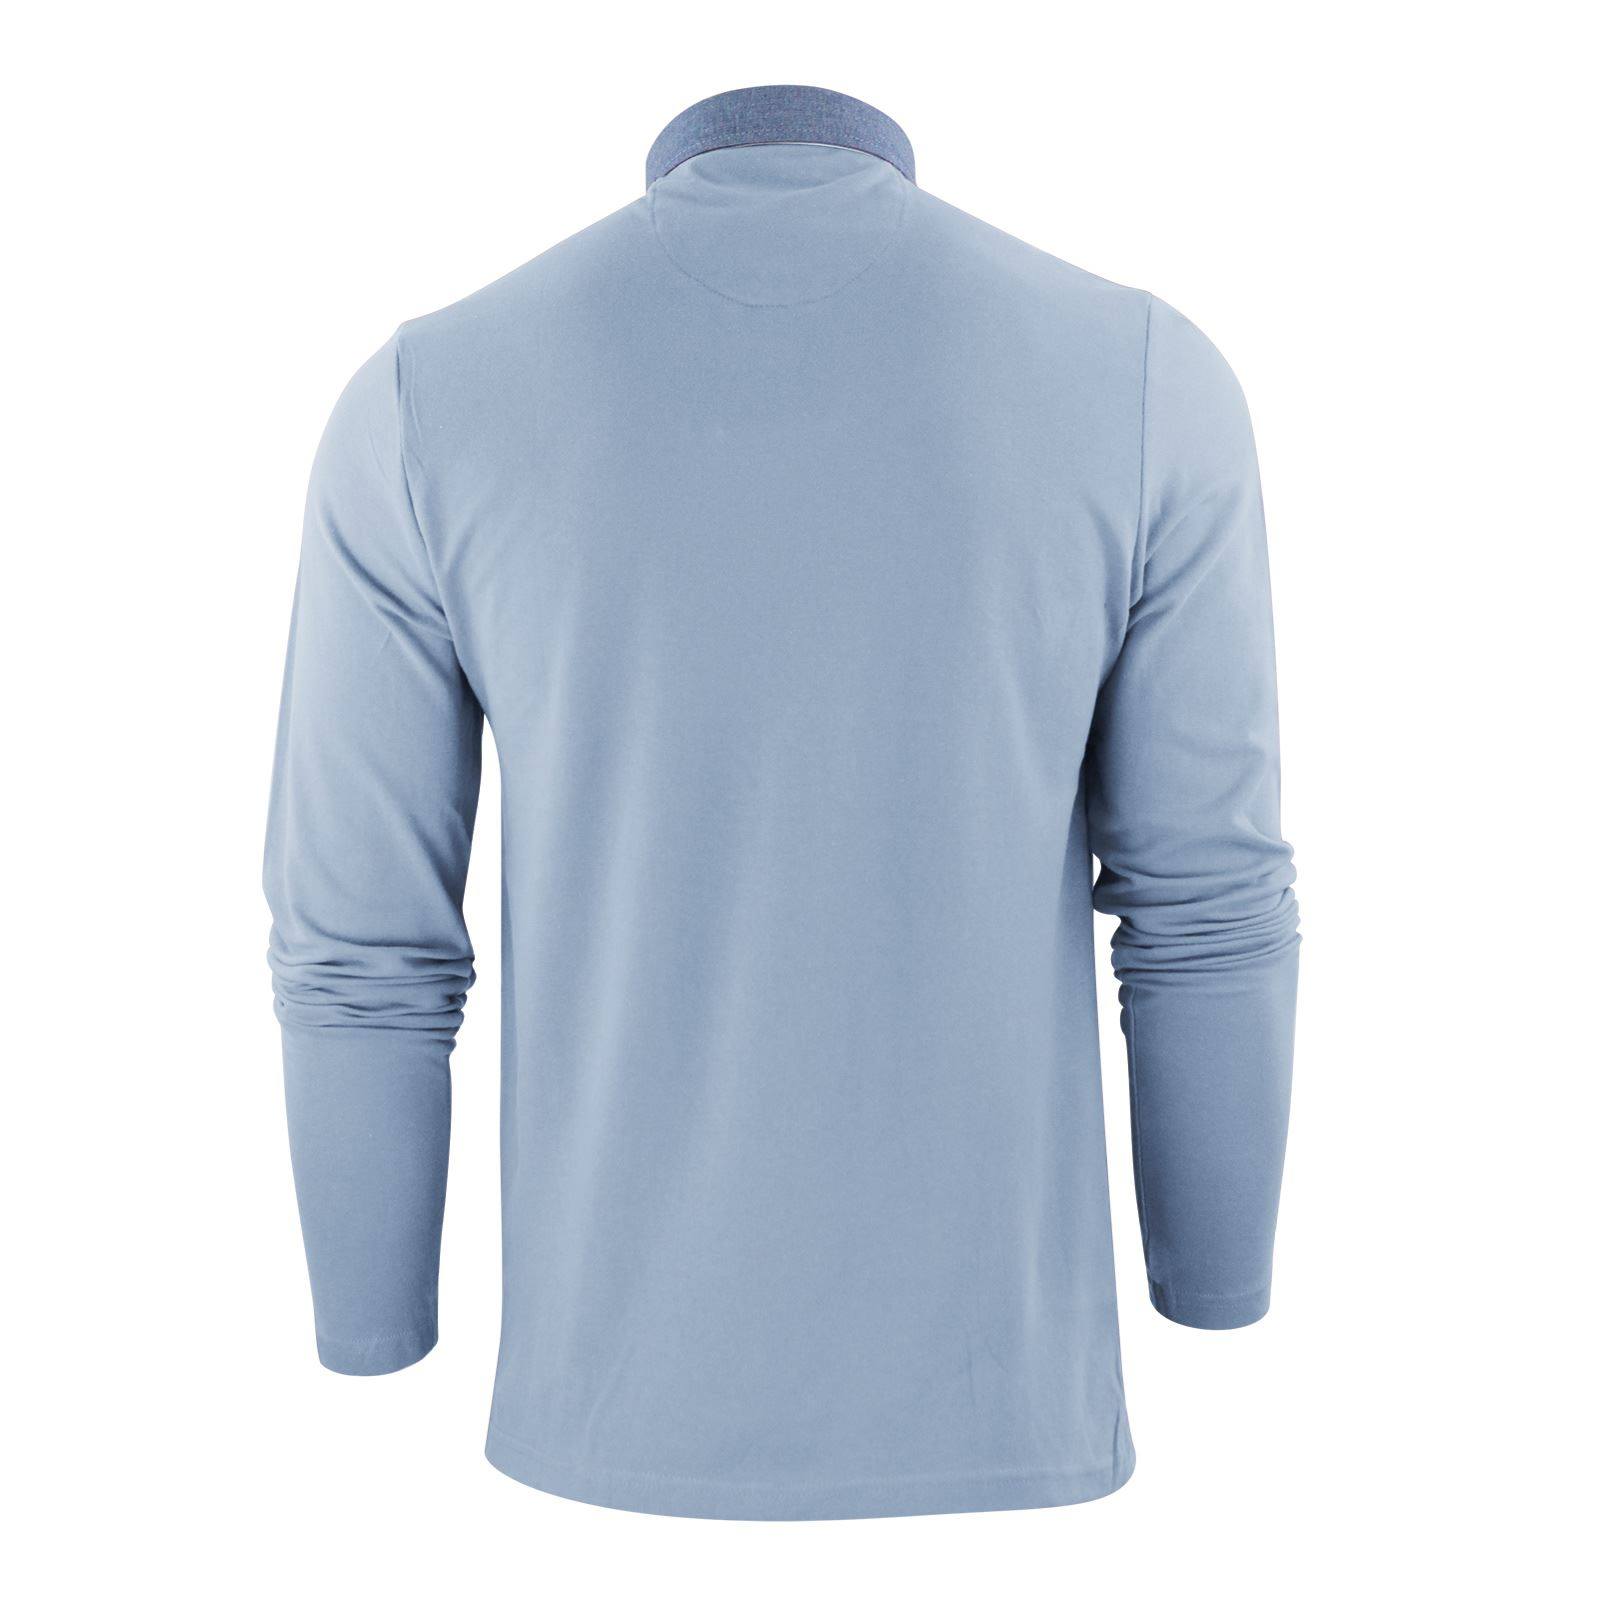 Mens-Polo-T-Shirt-Brave-Soul-Hera-Cotton-Long-Sleeve-Casual-Top thumbnail 24